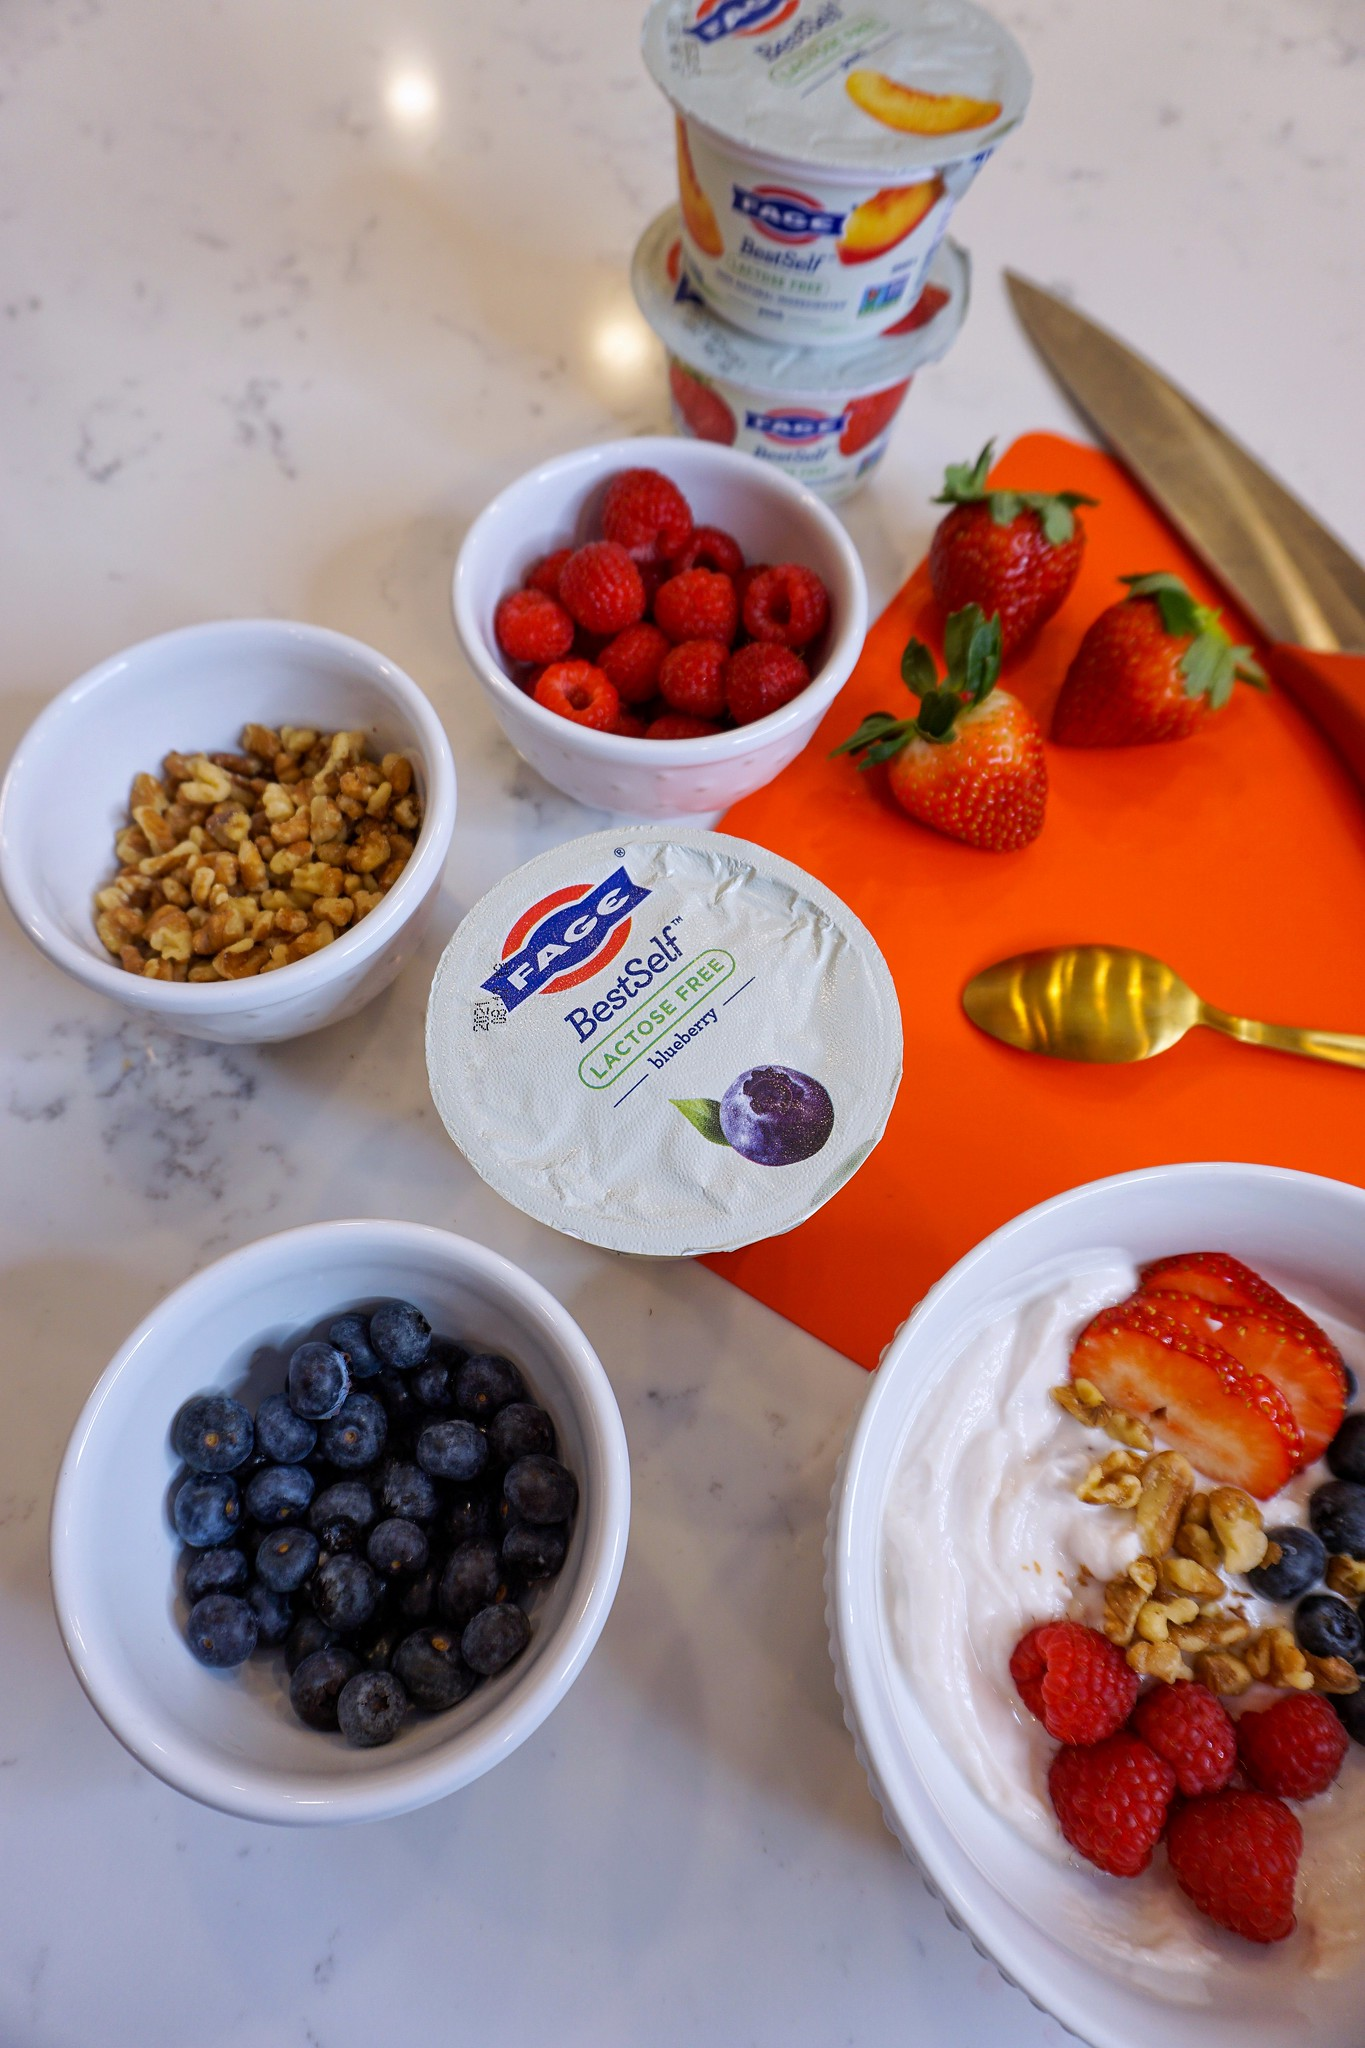 Easy Yogurt Parfait Recipe made with FAGE BestSelf Lactose Free Yogurt.